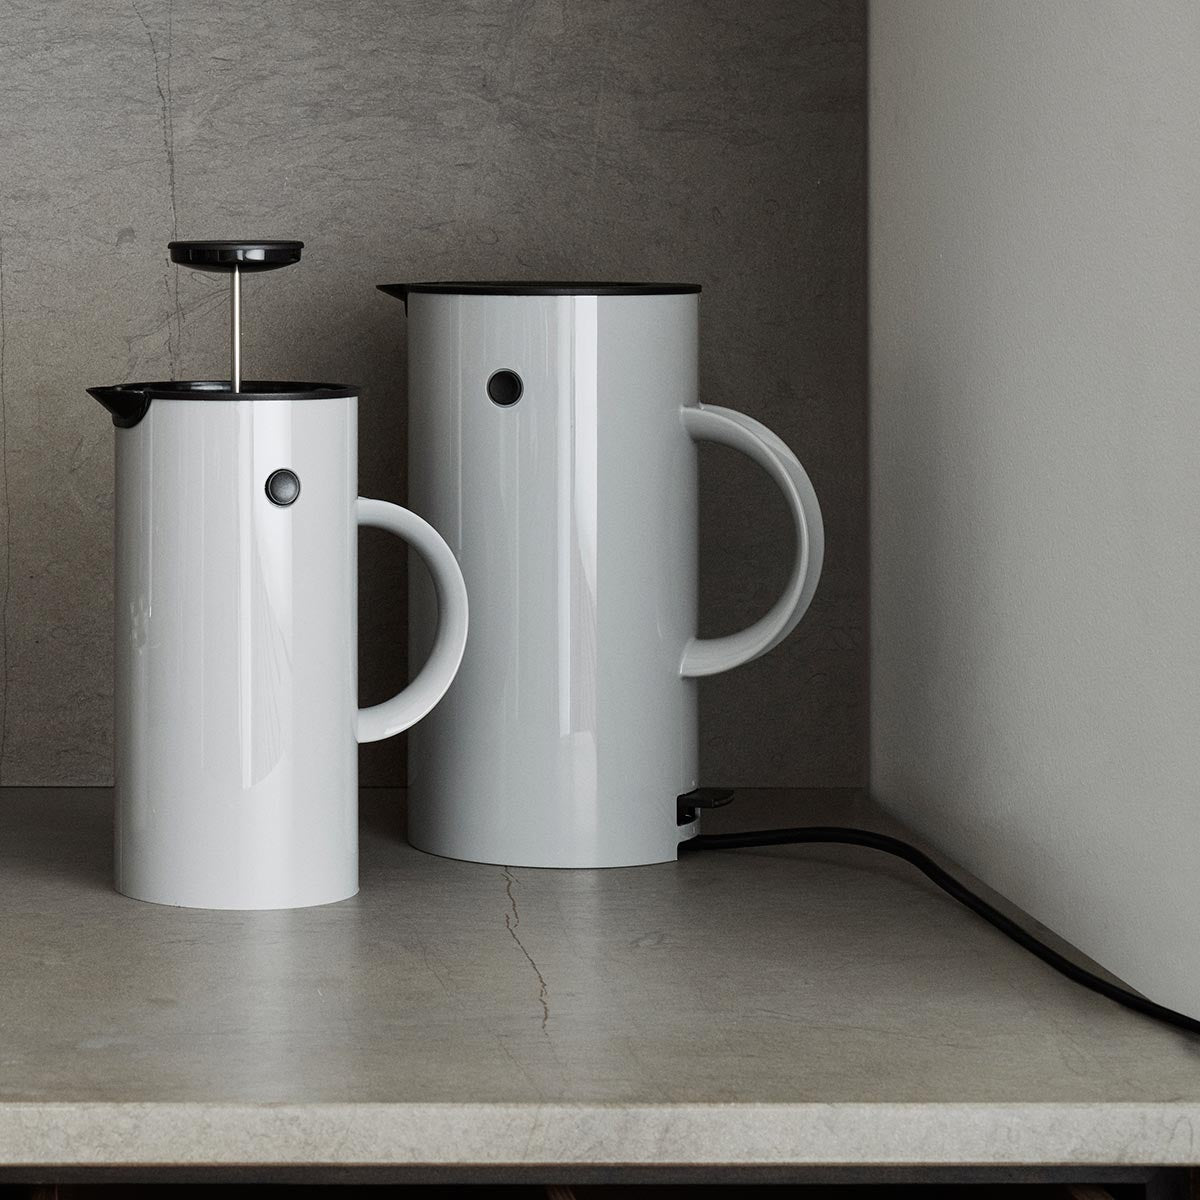 EM77 Kettle in Black by Stelton, at The